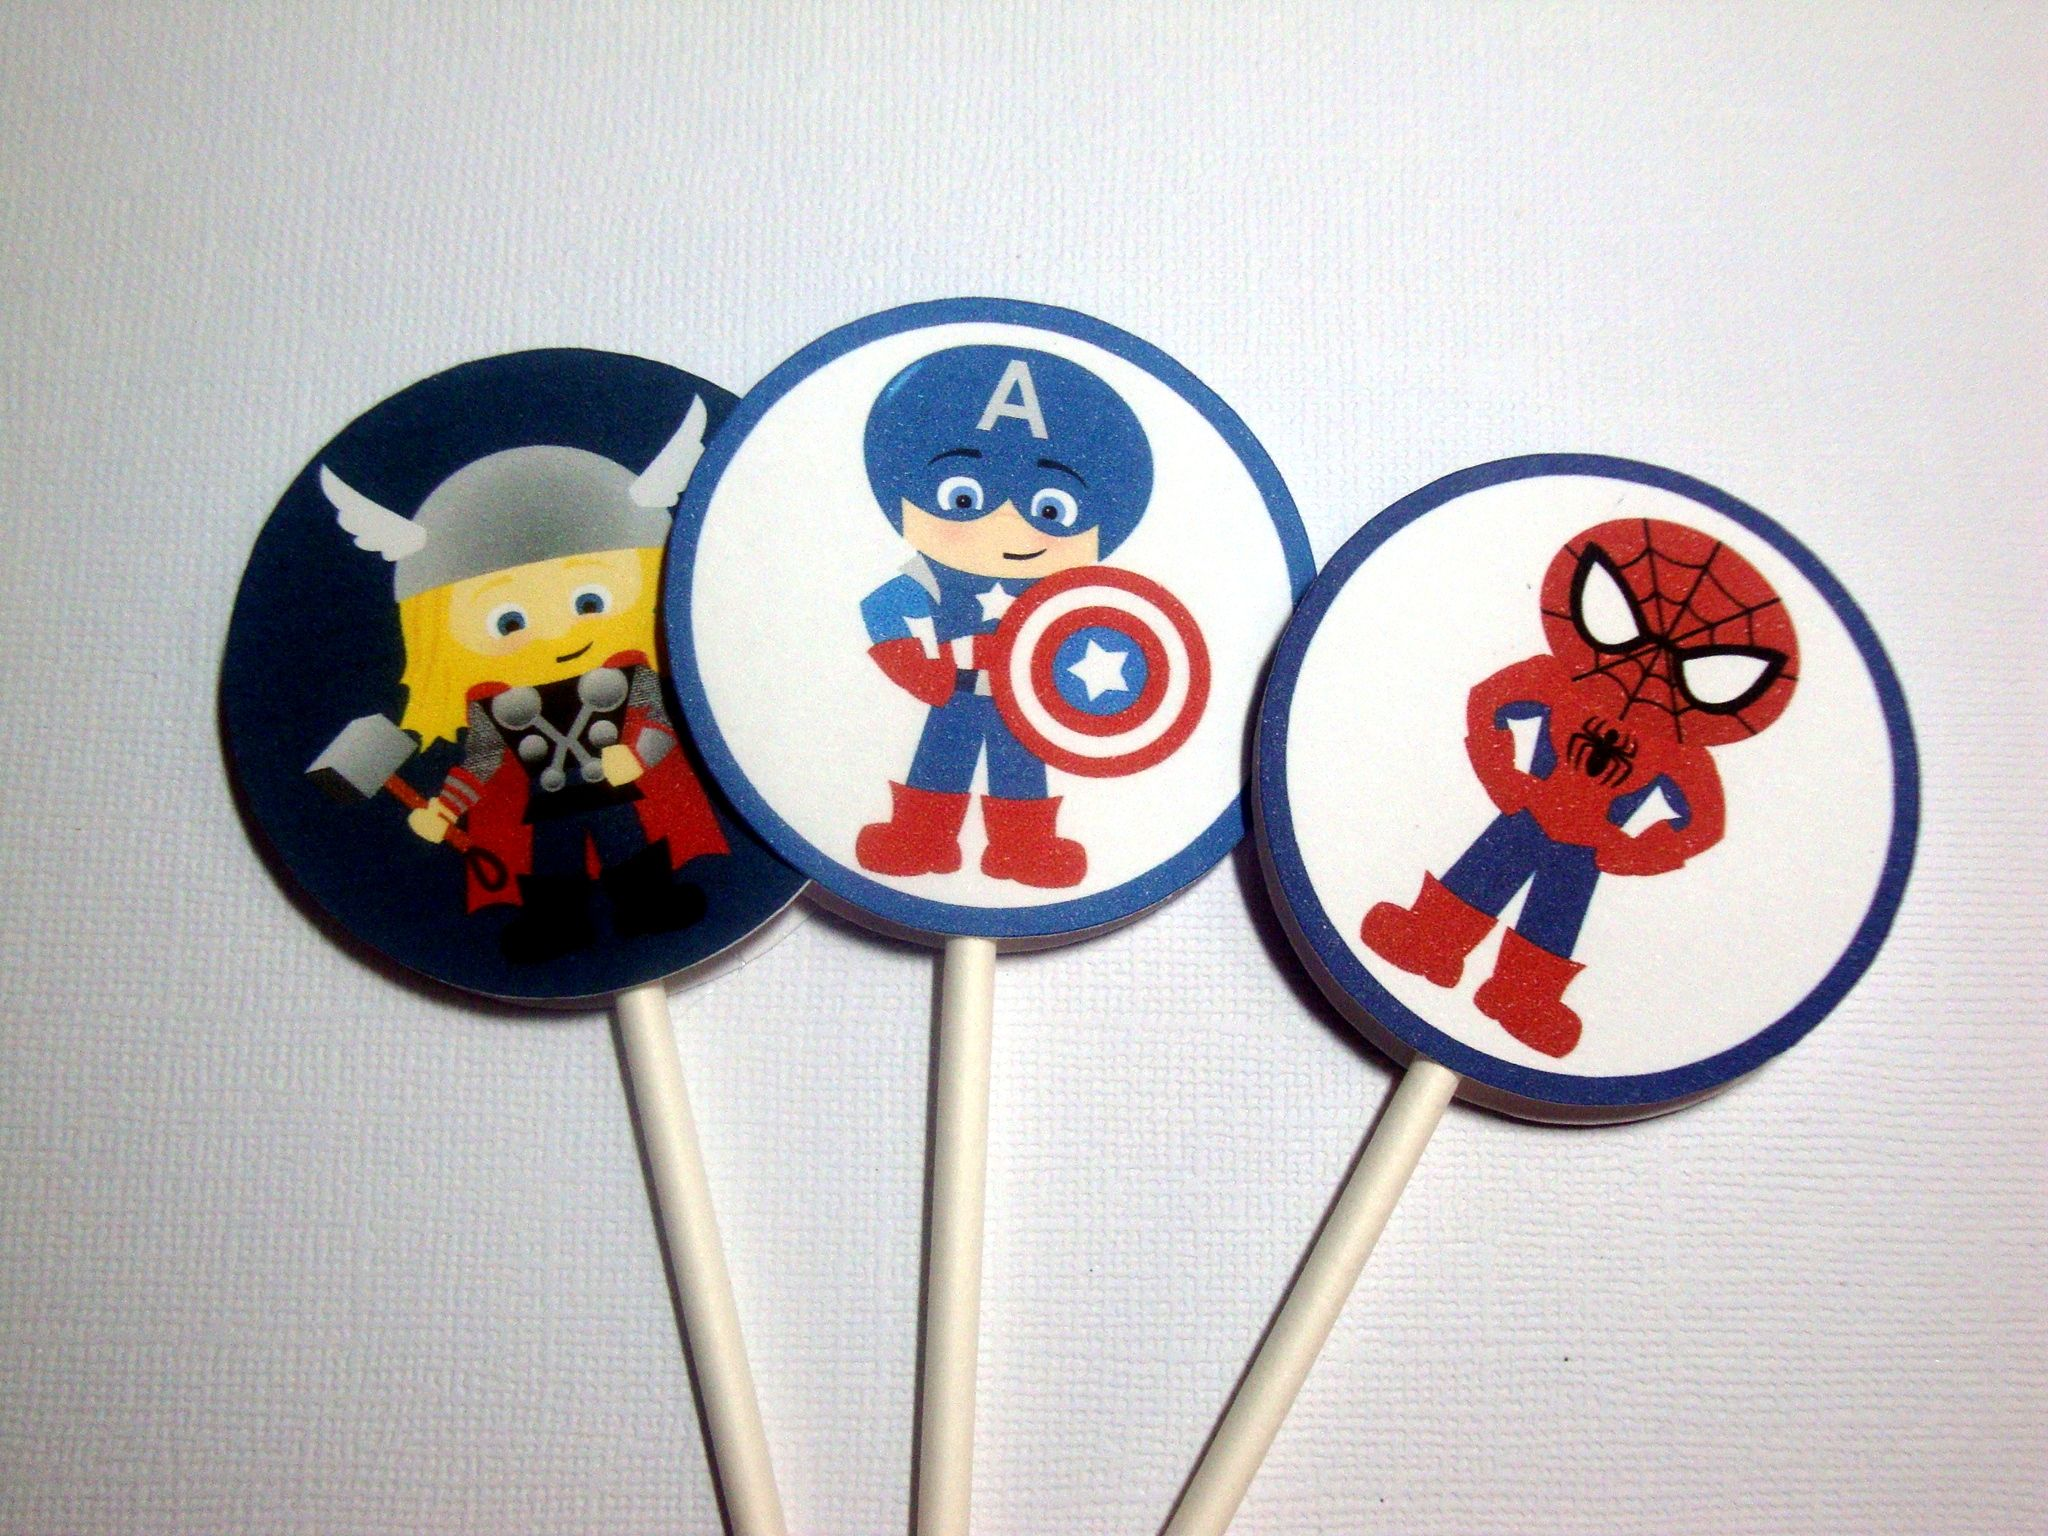 Superheroes cupcake toppers, boy birthday parties, kids birthday ideas. $21 for 24